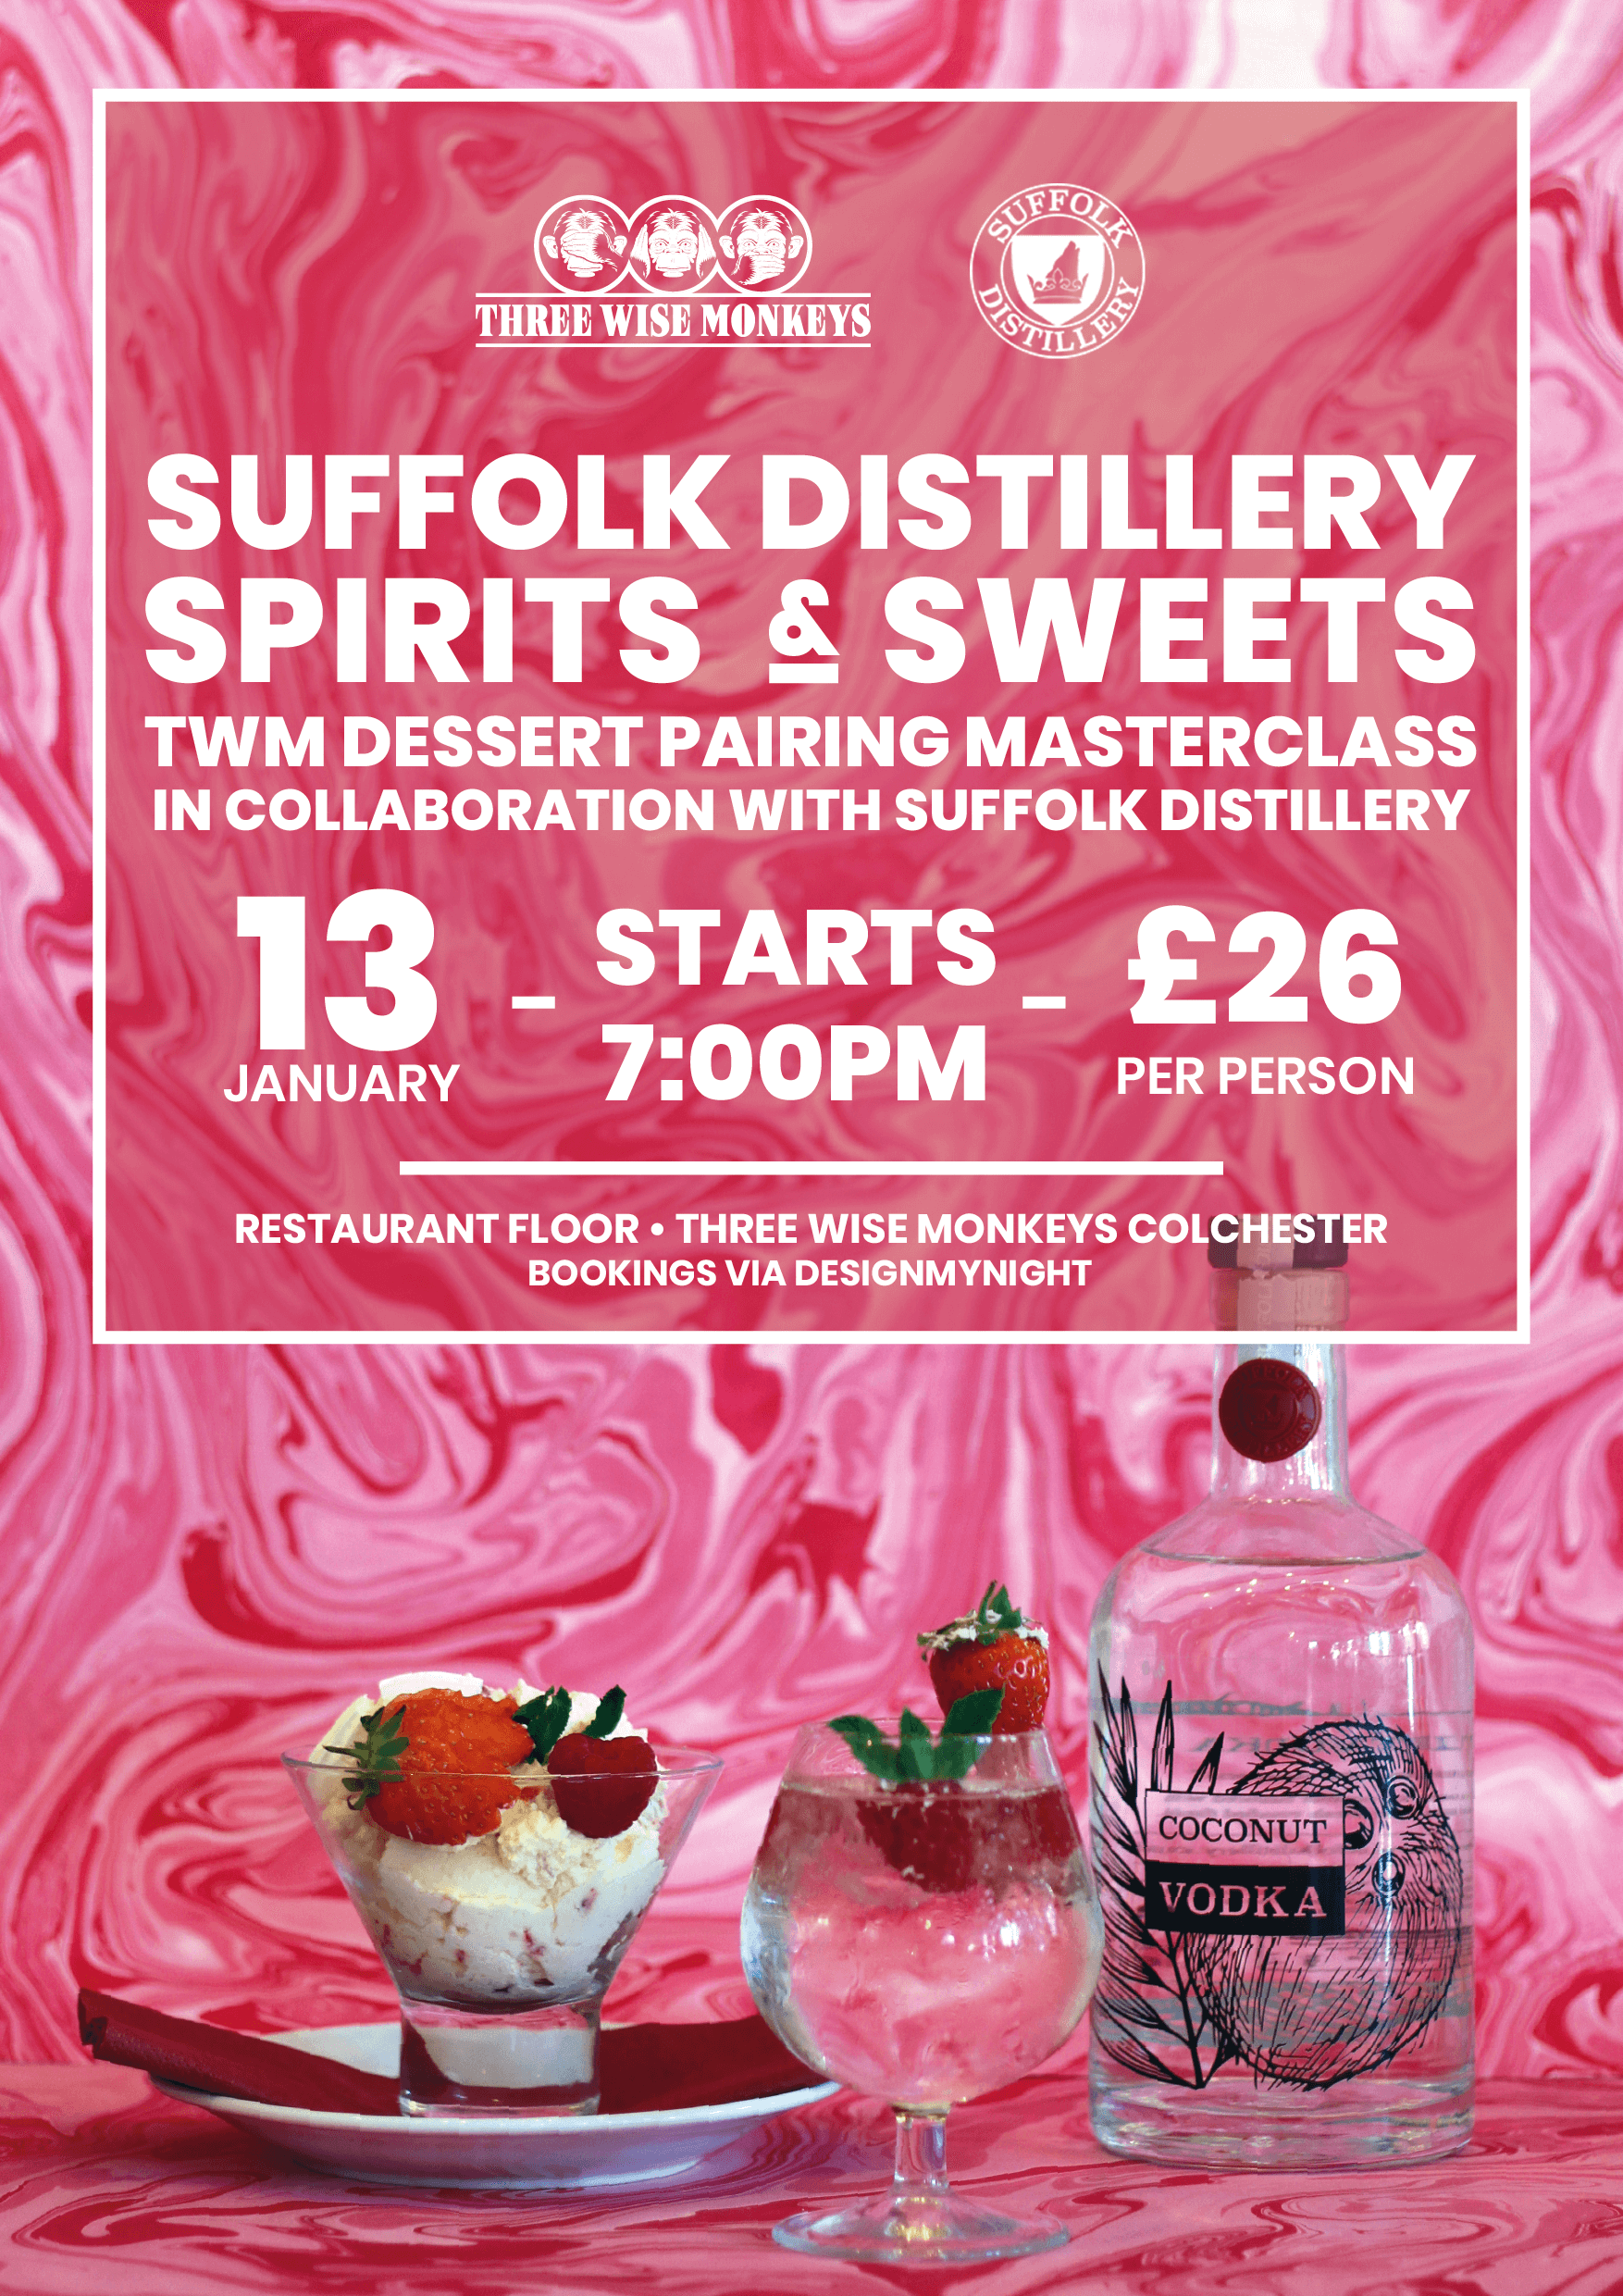 Suffolk Distillery Spirits & Sweets